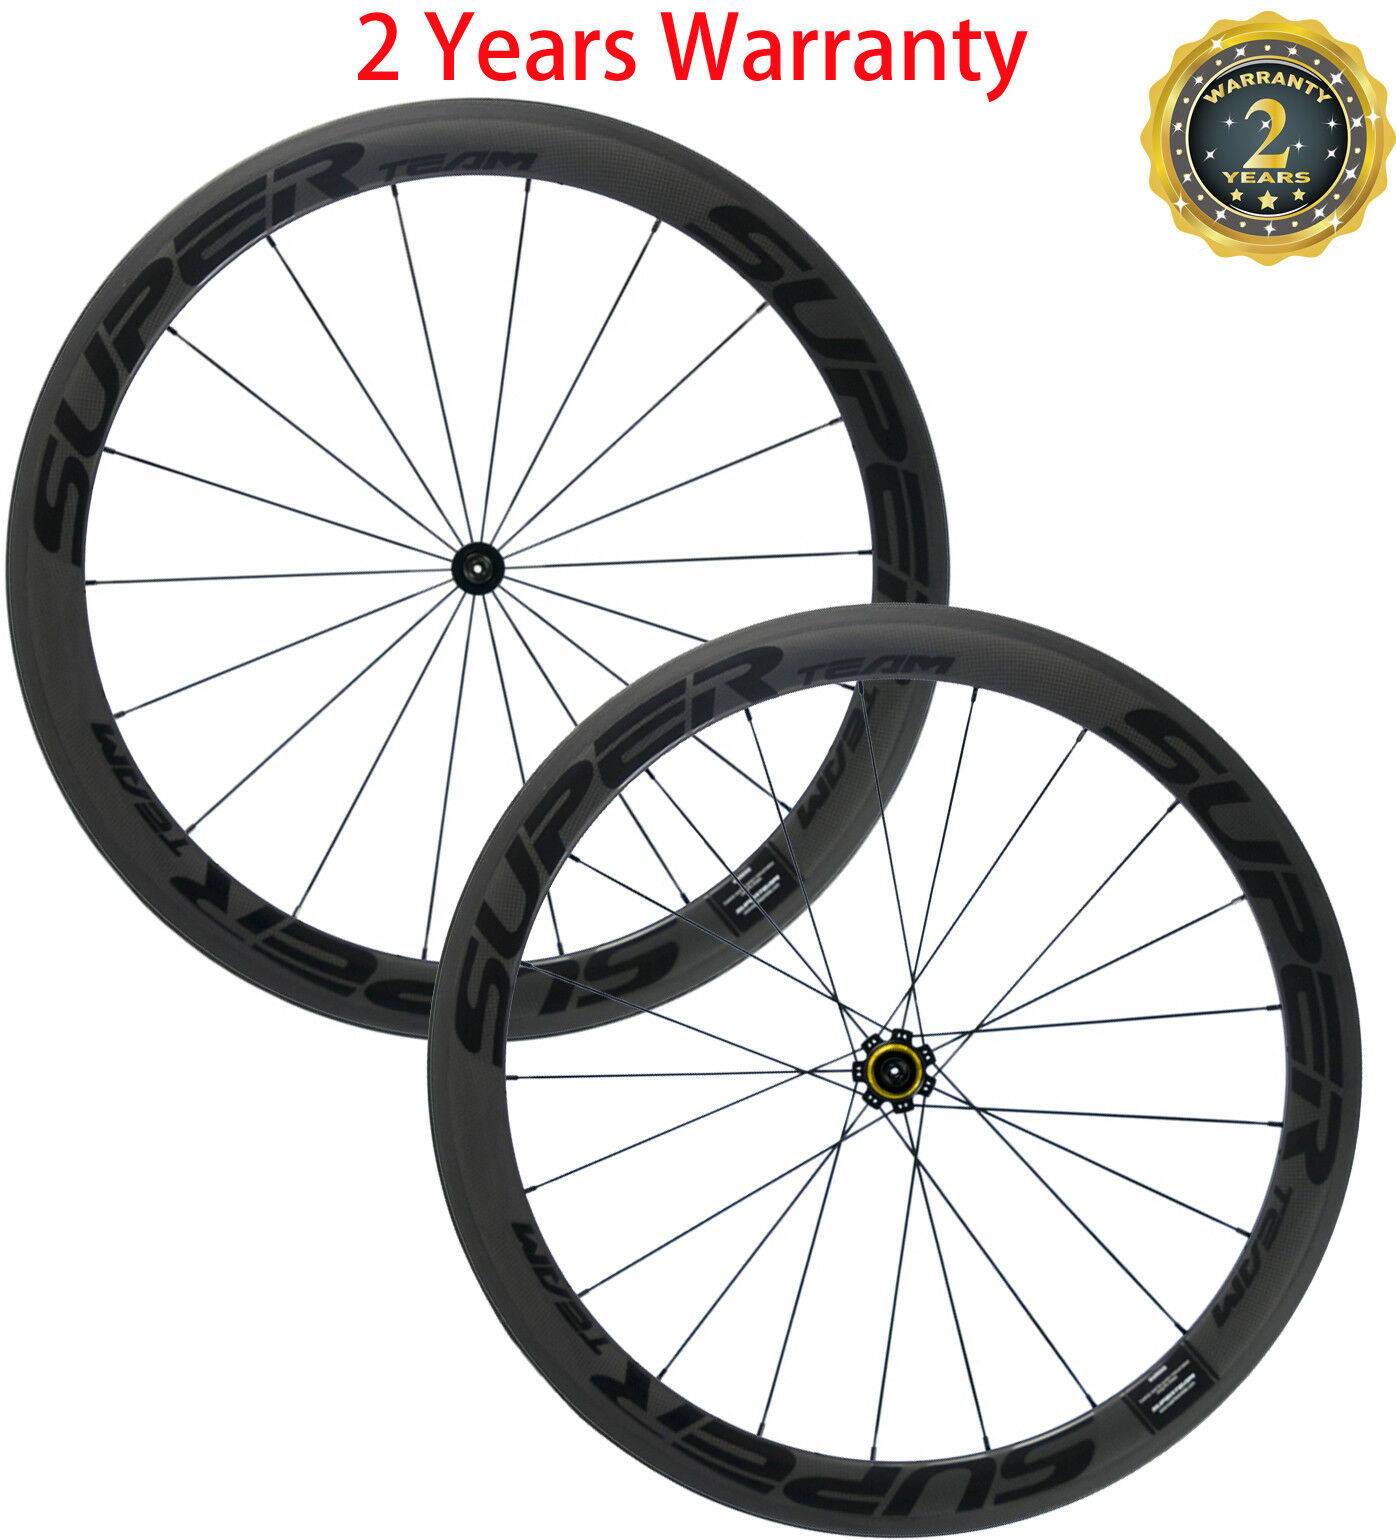 Superteam 50mm  Carbon Wheels Ceramic R7 Hub Clincher Road Bicycle Wheelset Race  novelty items